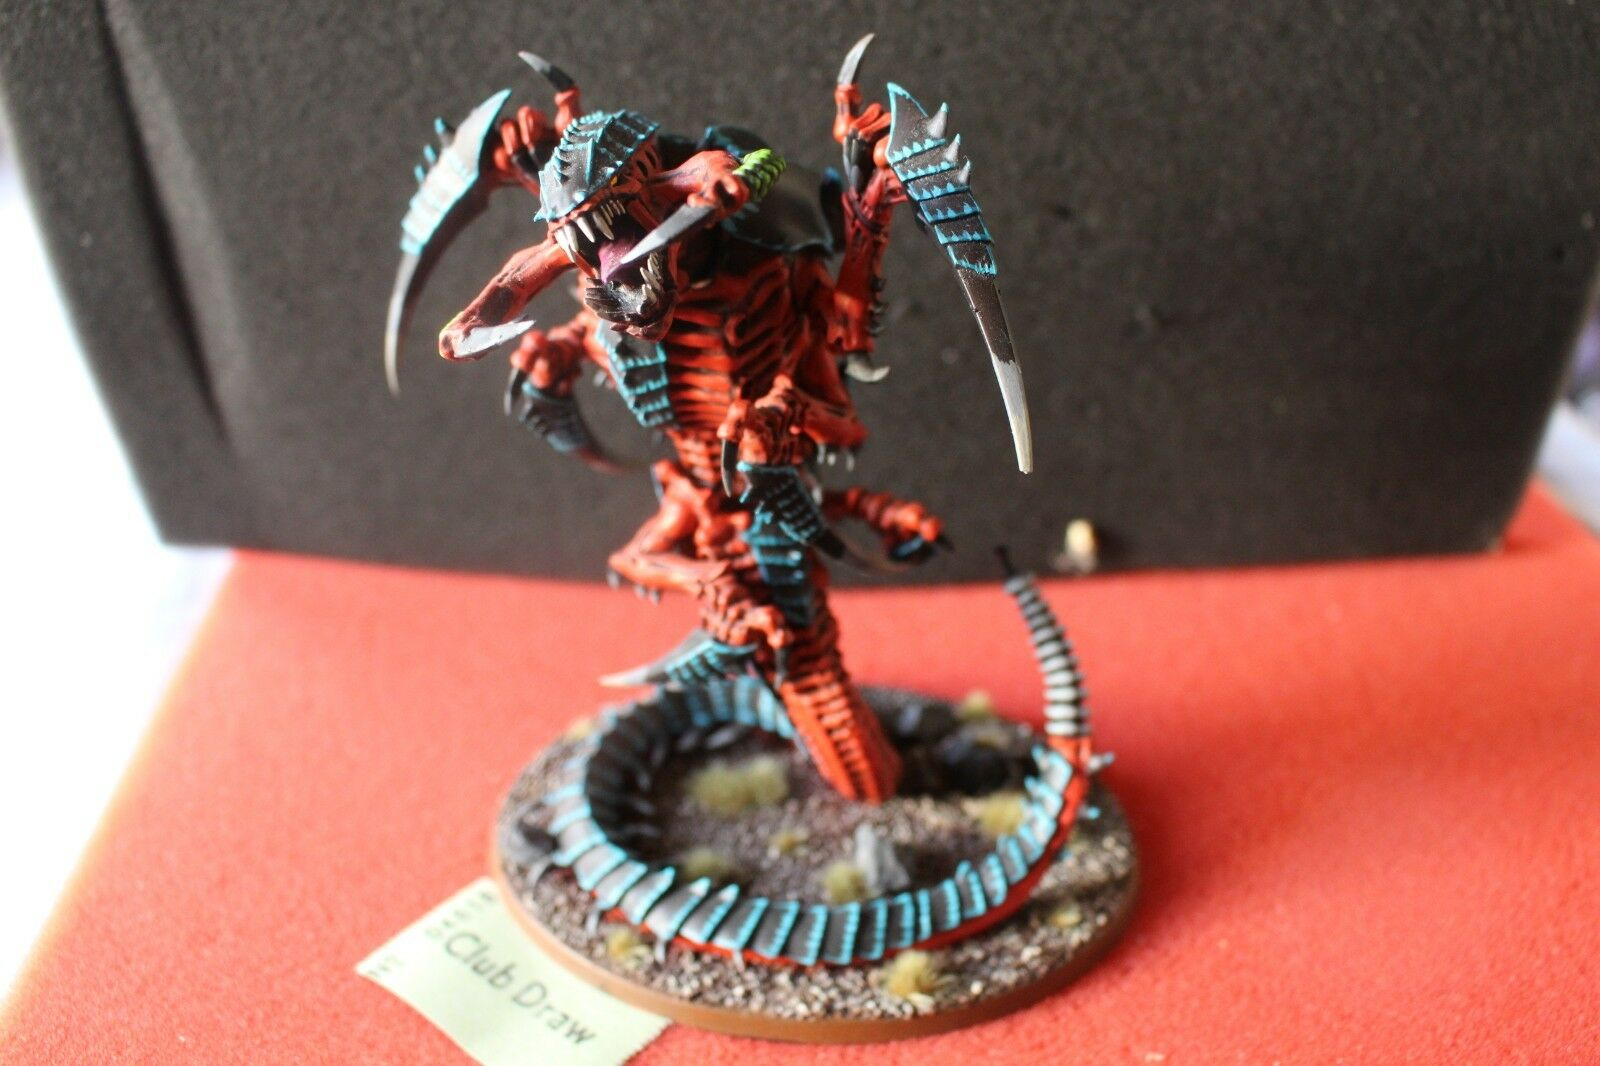 Games Workshop Warhammer 40k Tyranids Mawloc Alpha Painted WH40K Army Tyranid